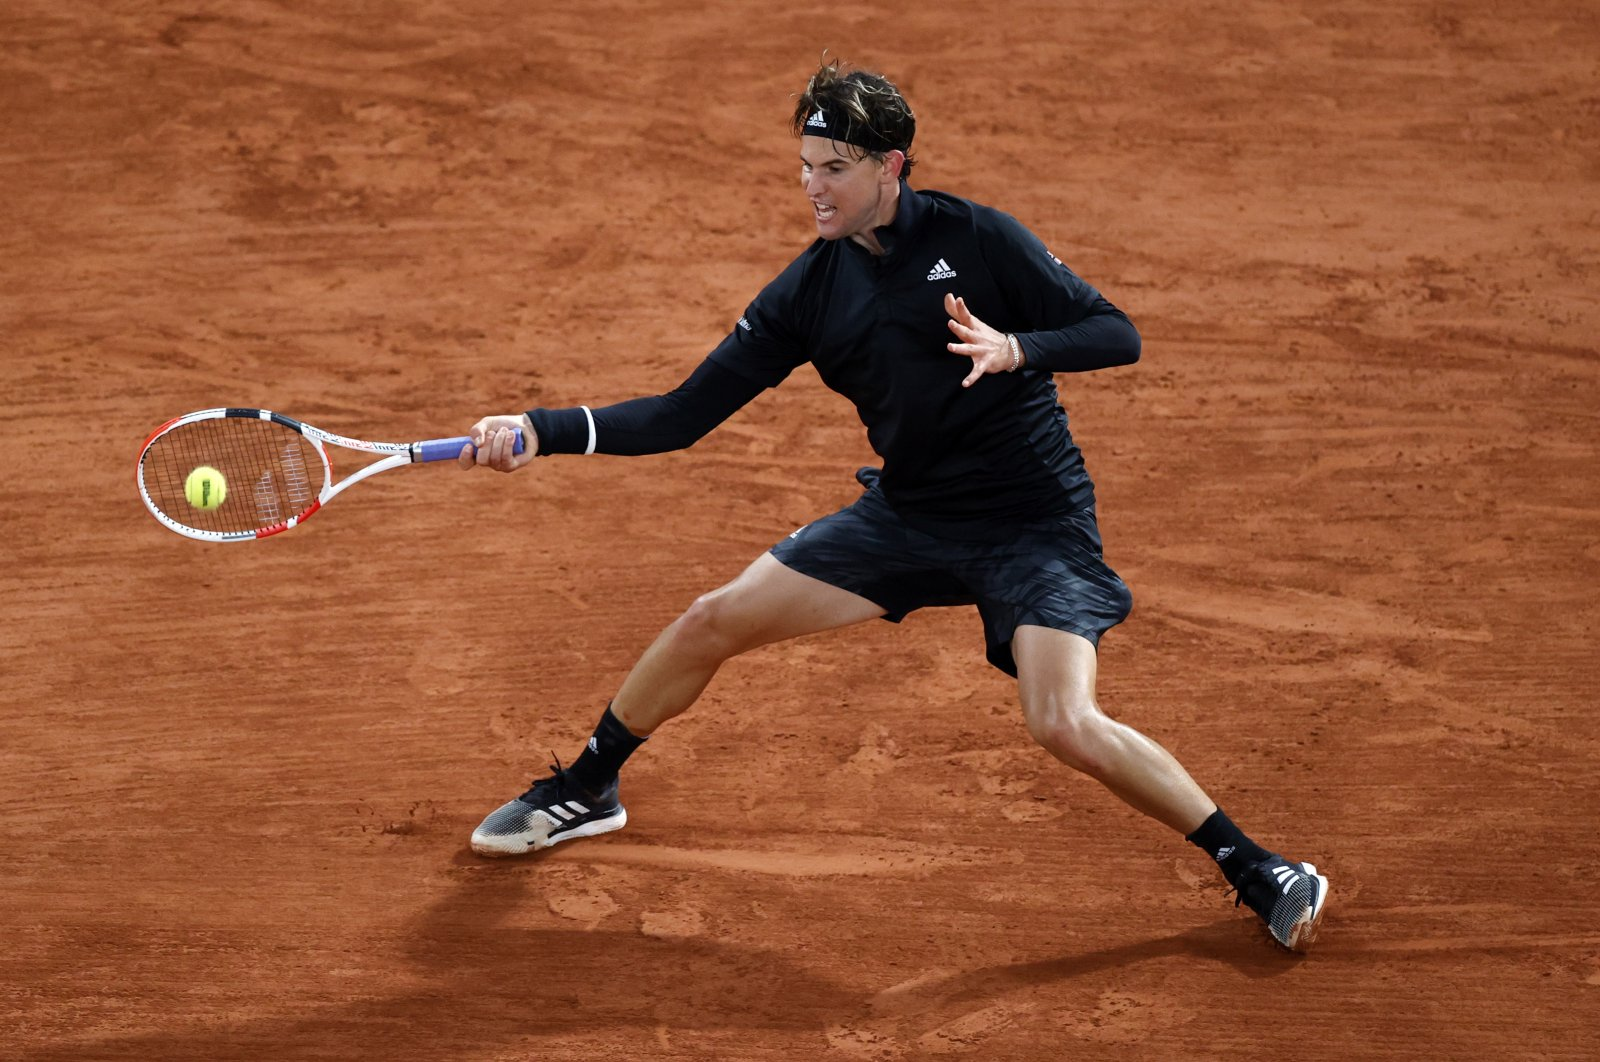 Dominic Thiem in action during the French Open first-round match against Marin Cilic, in Paris, France, Sept. 28, 2020. (Reuters Photo)